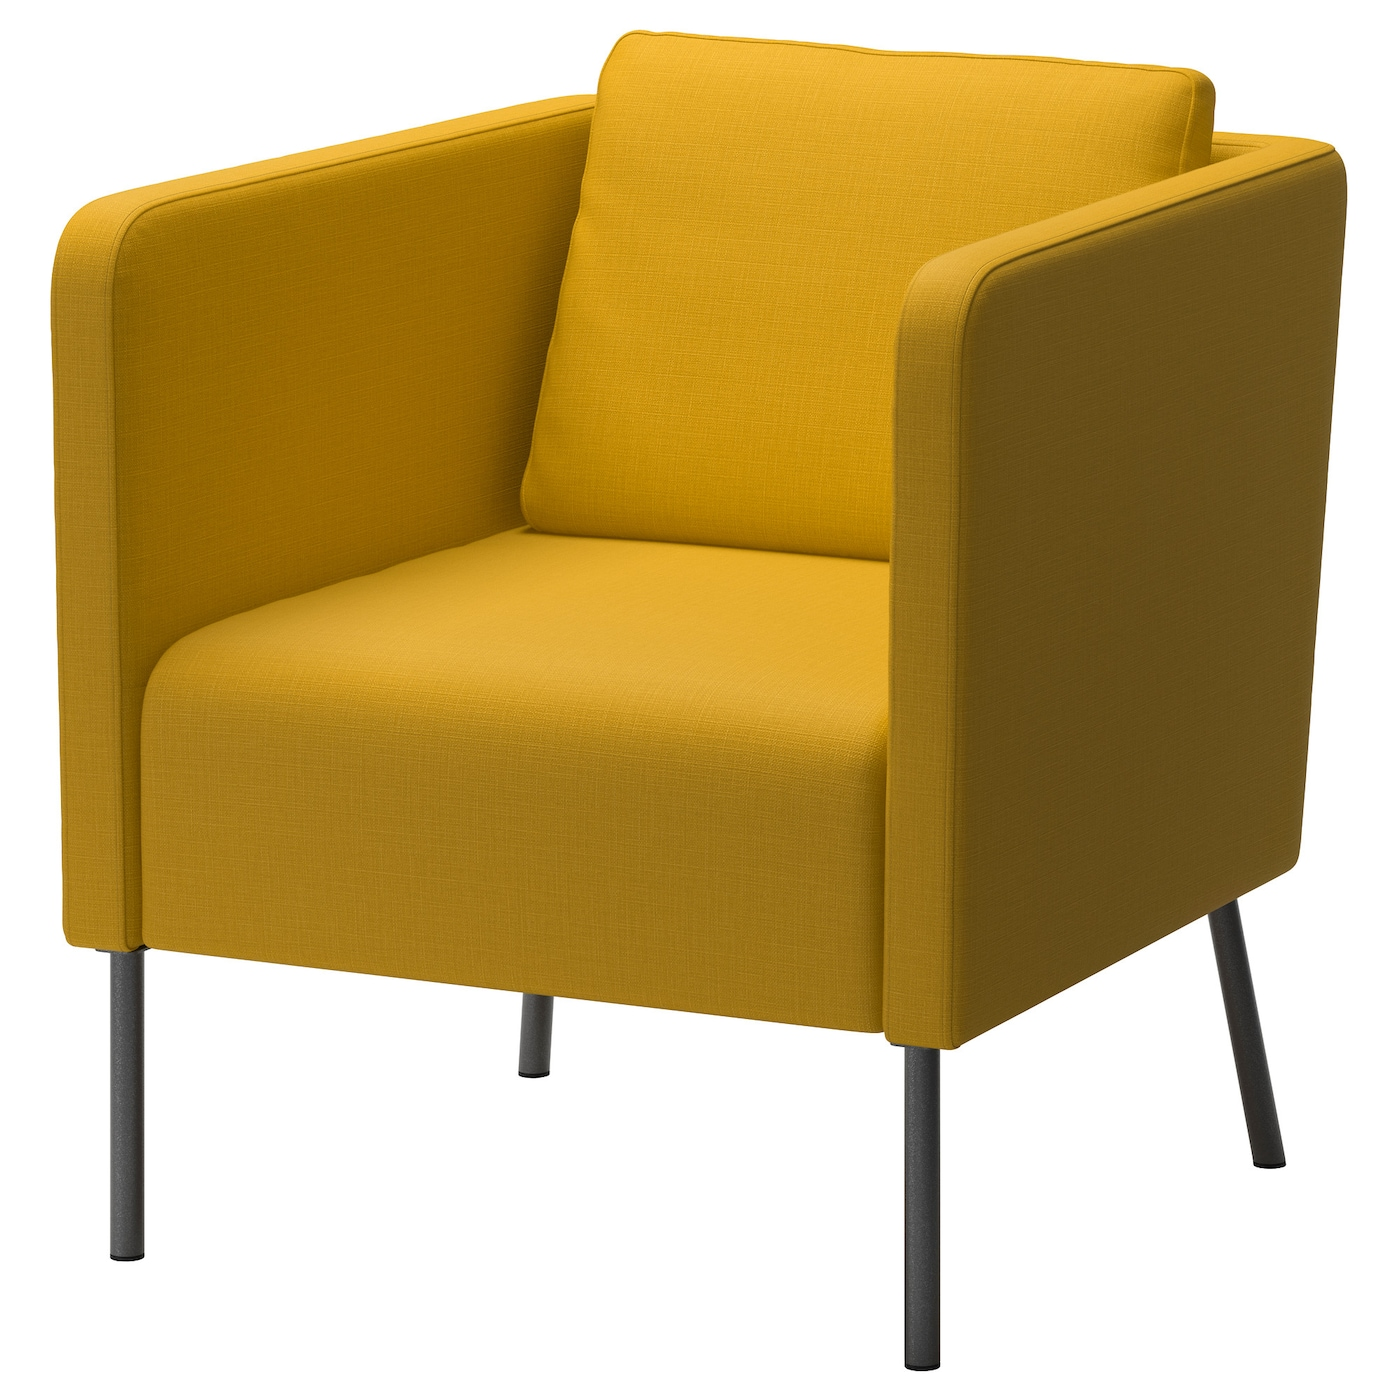 IKEA EKERÖ armchair The back cushion can be moved around to fit your sitting style.